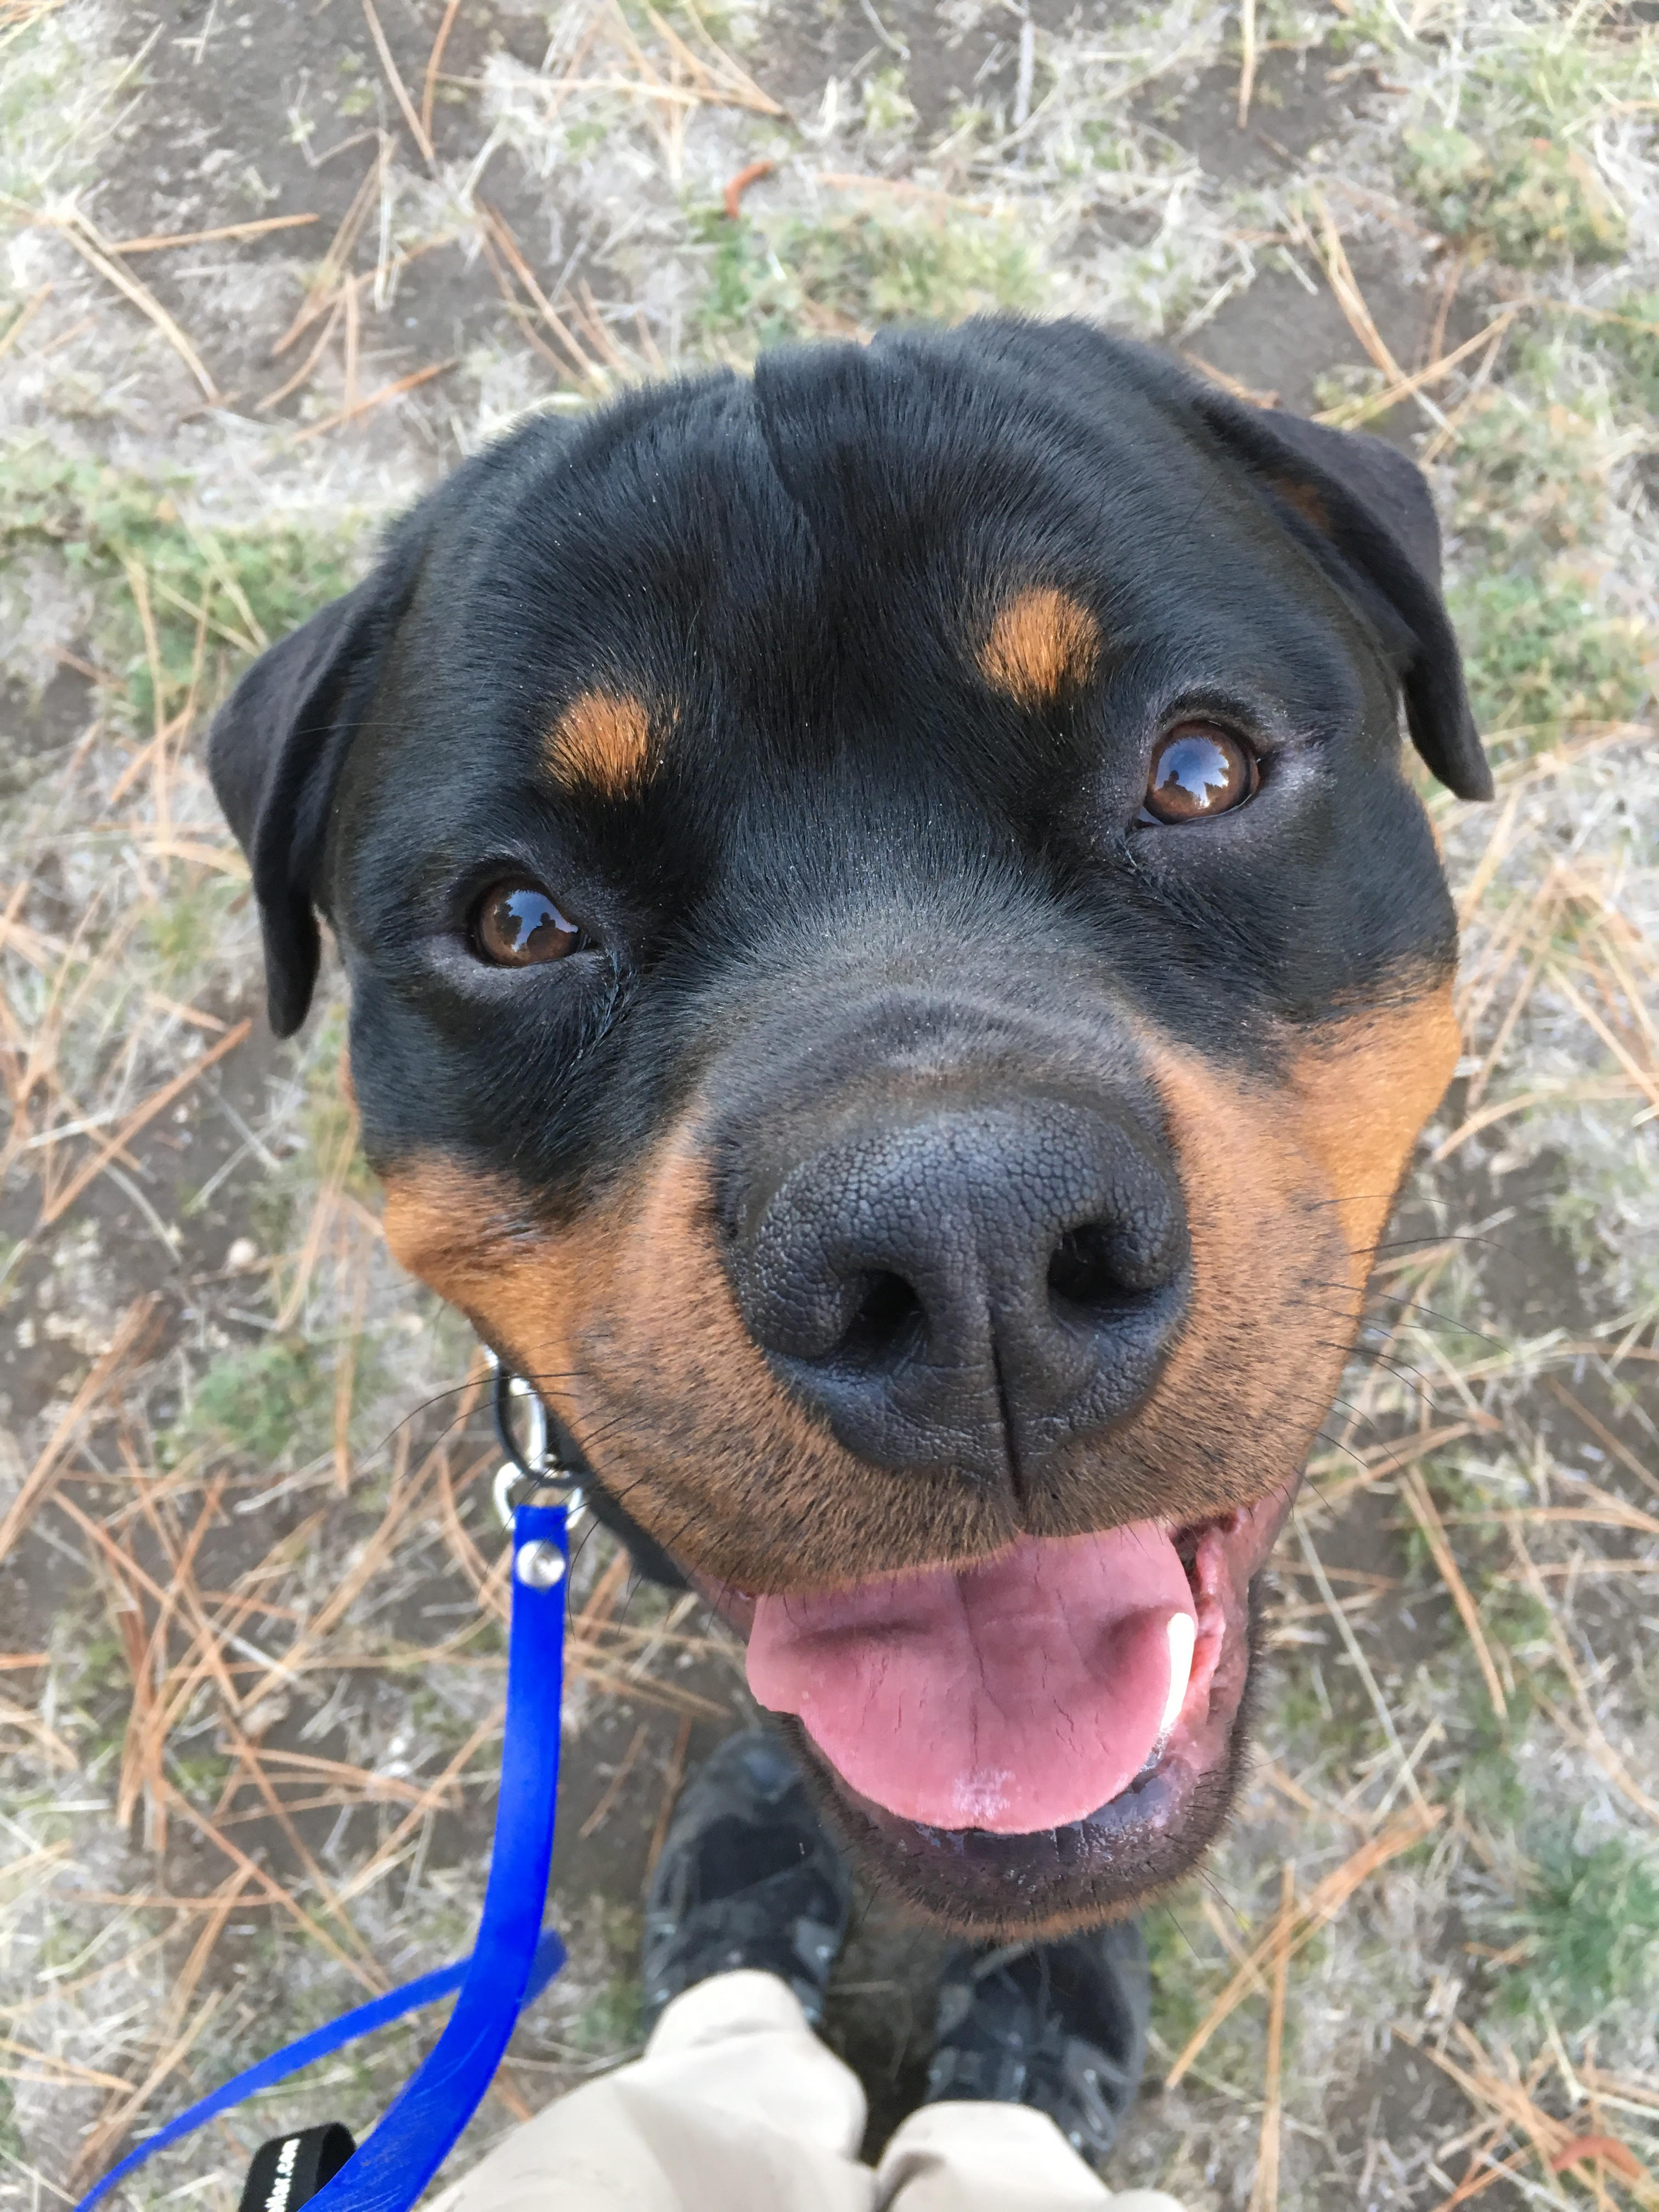 Rudy the Rottweiler